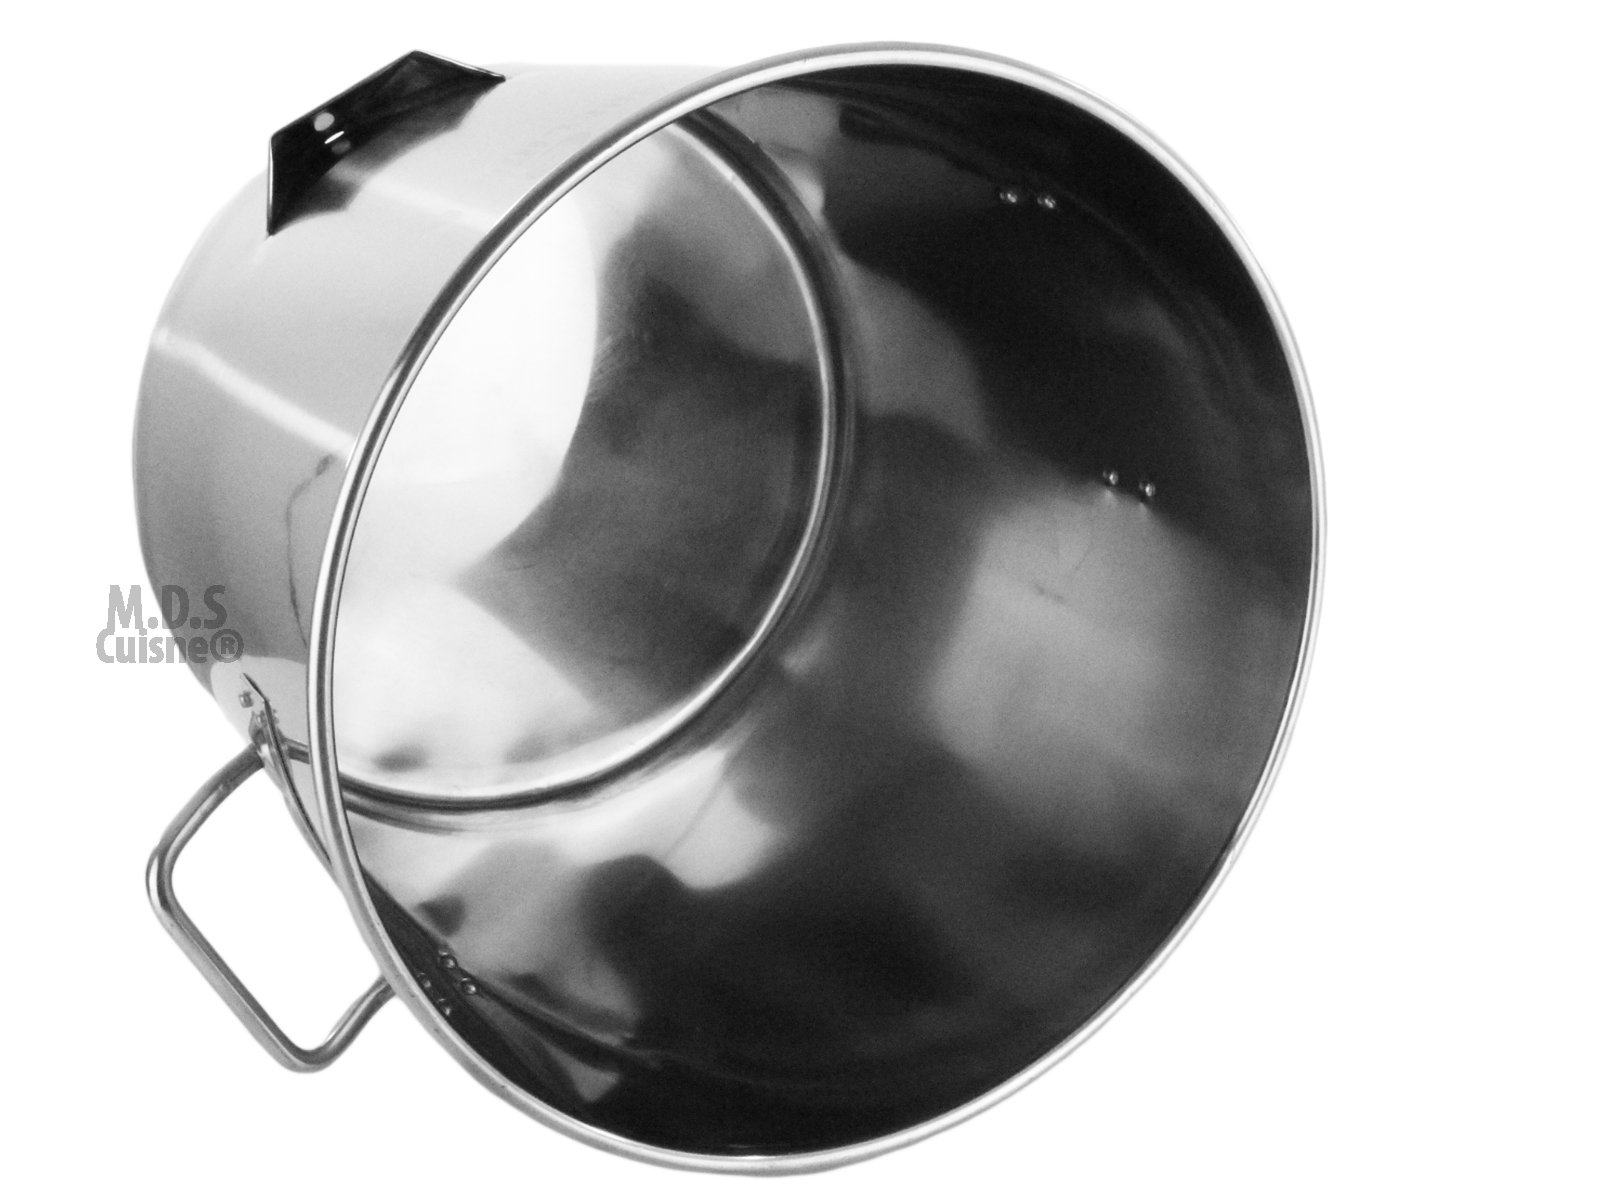 Stock Pot Stainless Steel 52''QT Lid Steamer Brew Vaporera Divider Tamales New by M.D.S Cuisine Cookwares (Image #6)